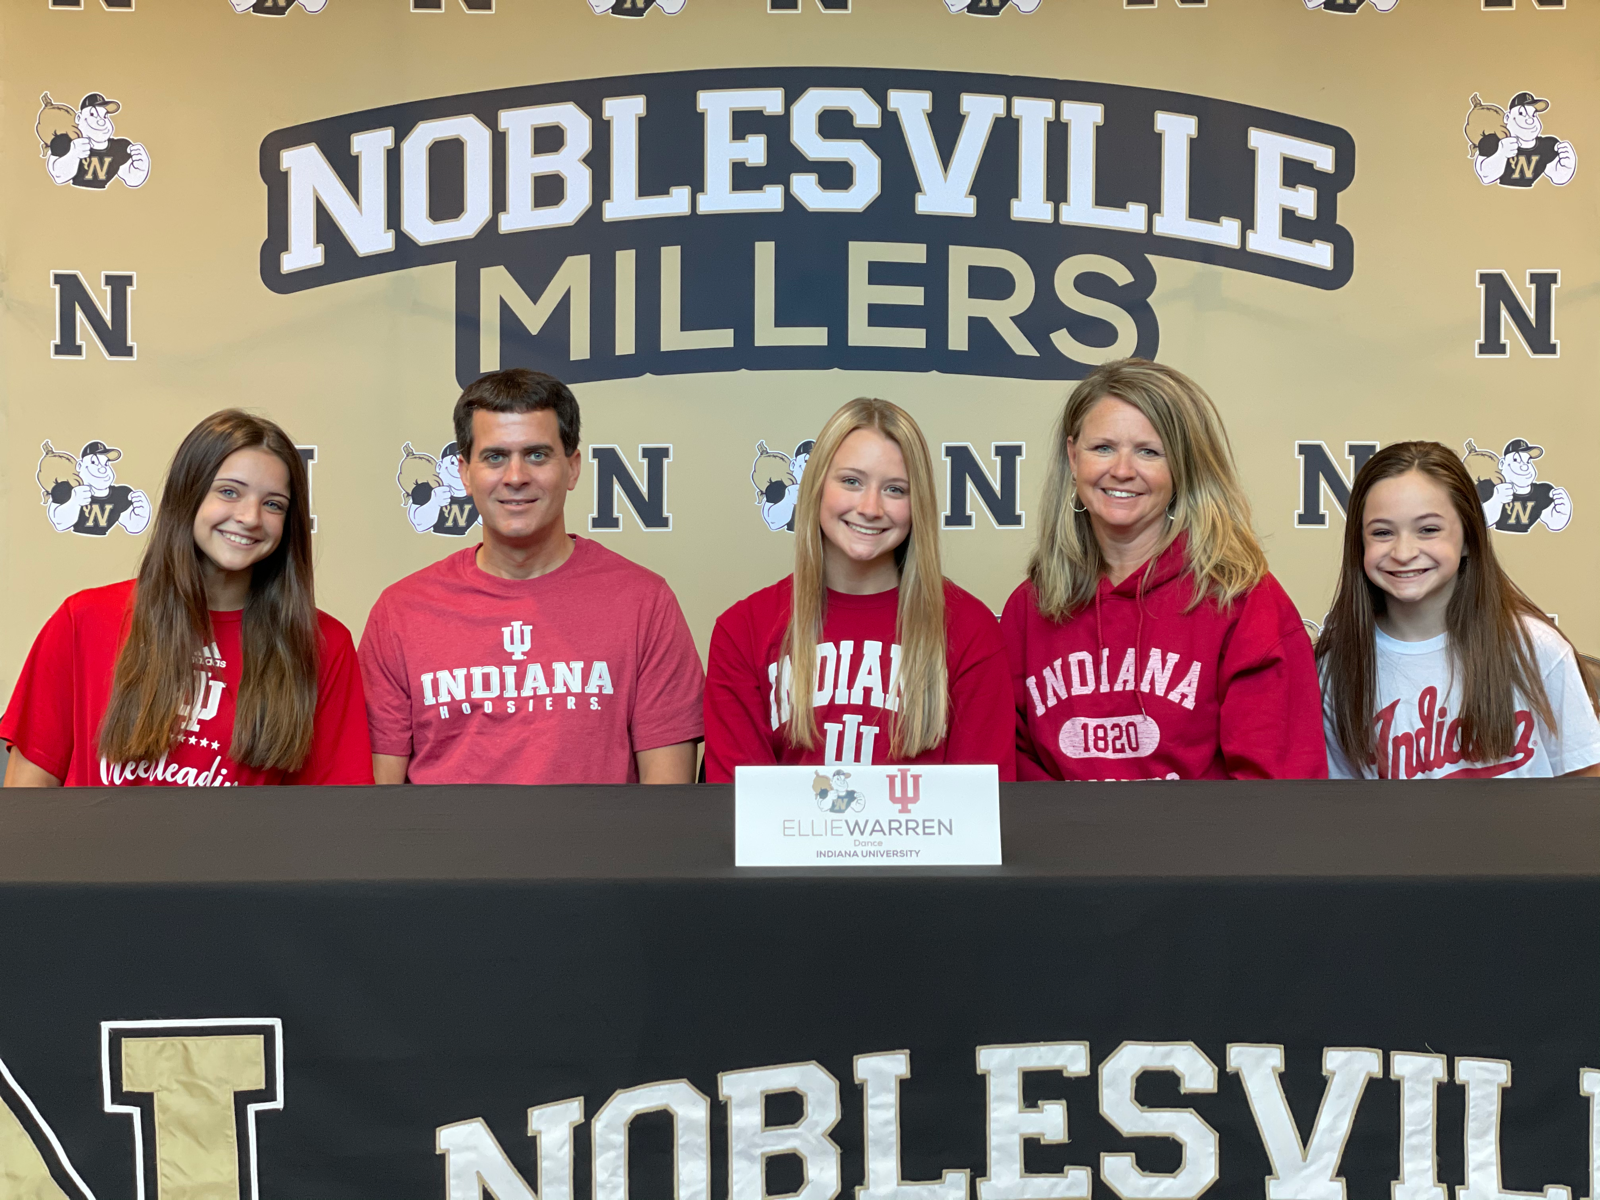 Ellie Warren signs with Indiana University